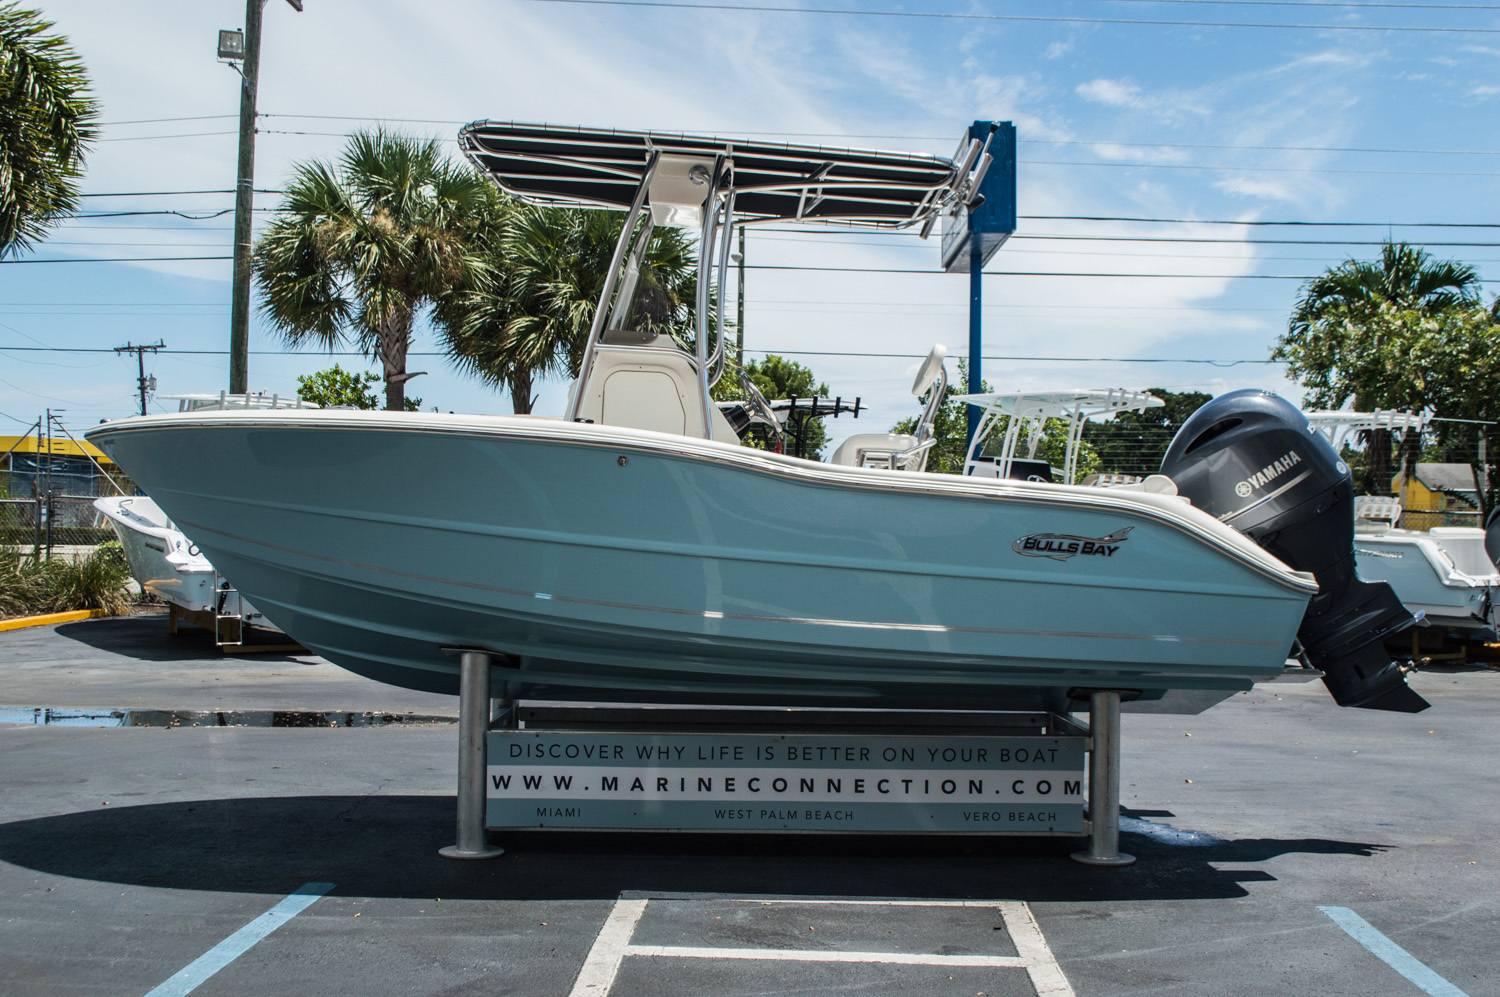 Thumbnail 4 for New 2016 Bulls Bay 200 CC Center Console boat for sale in West Palm Beach, FL